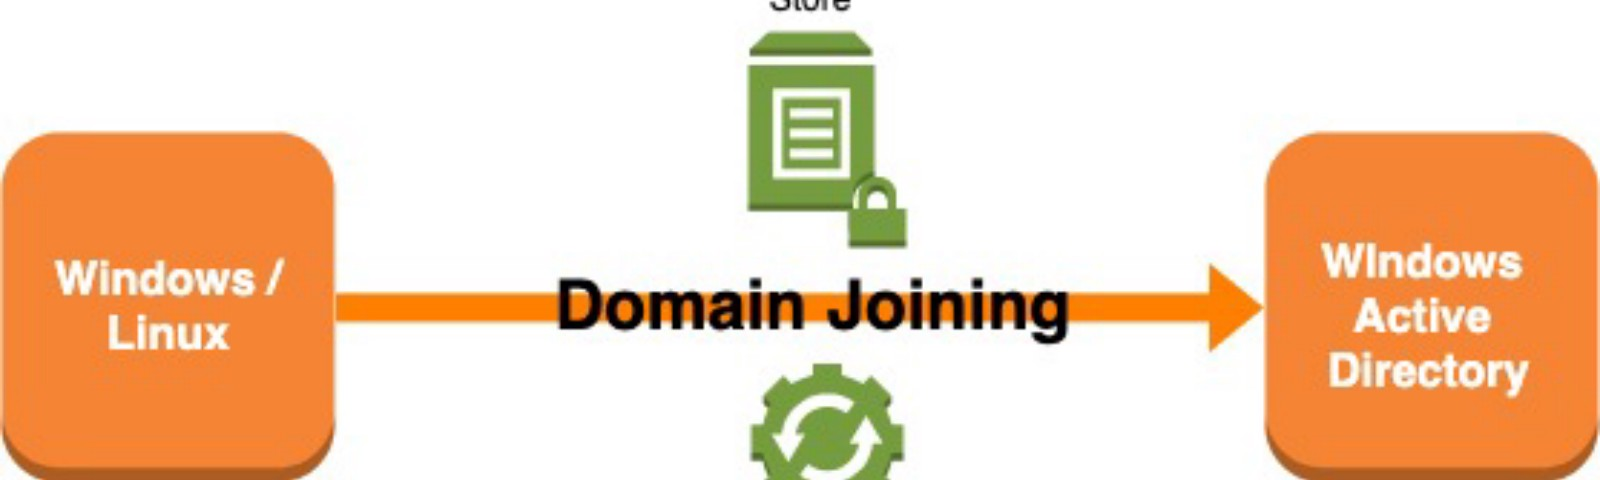 Domain Join Automation: AWS SSM & Terraform - Tensult Blogs